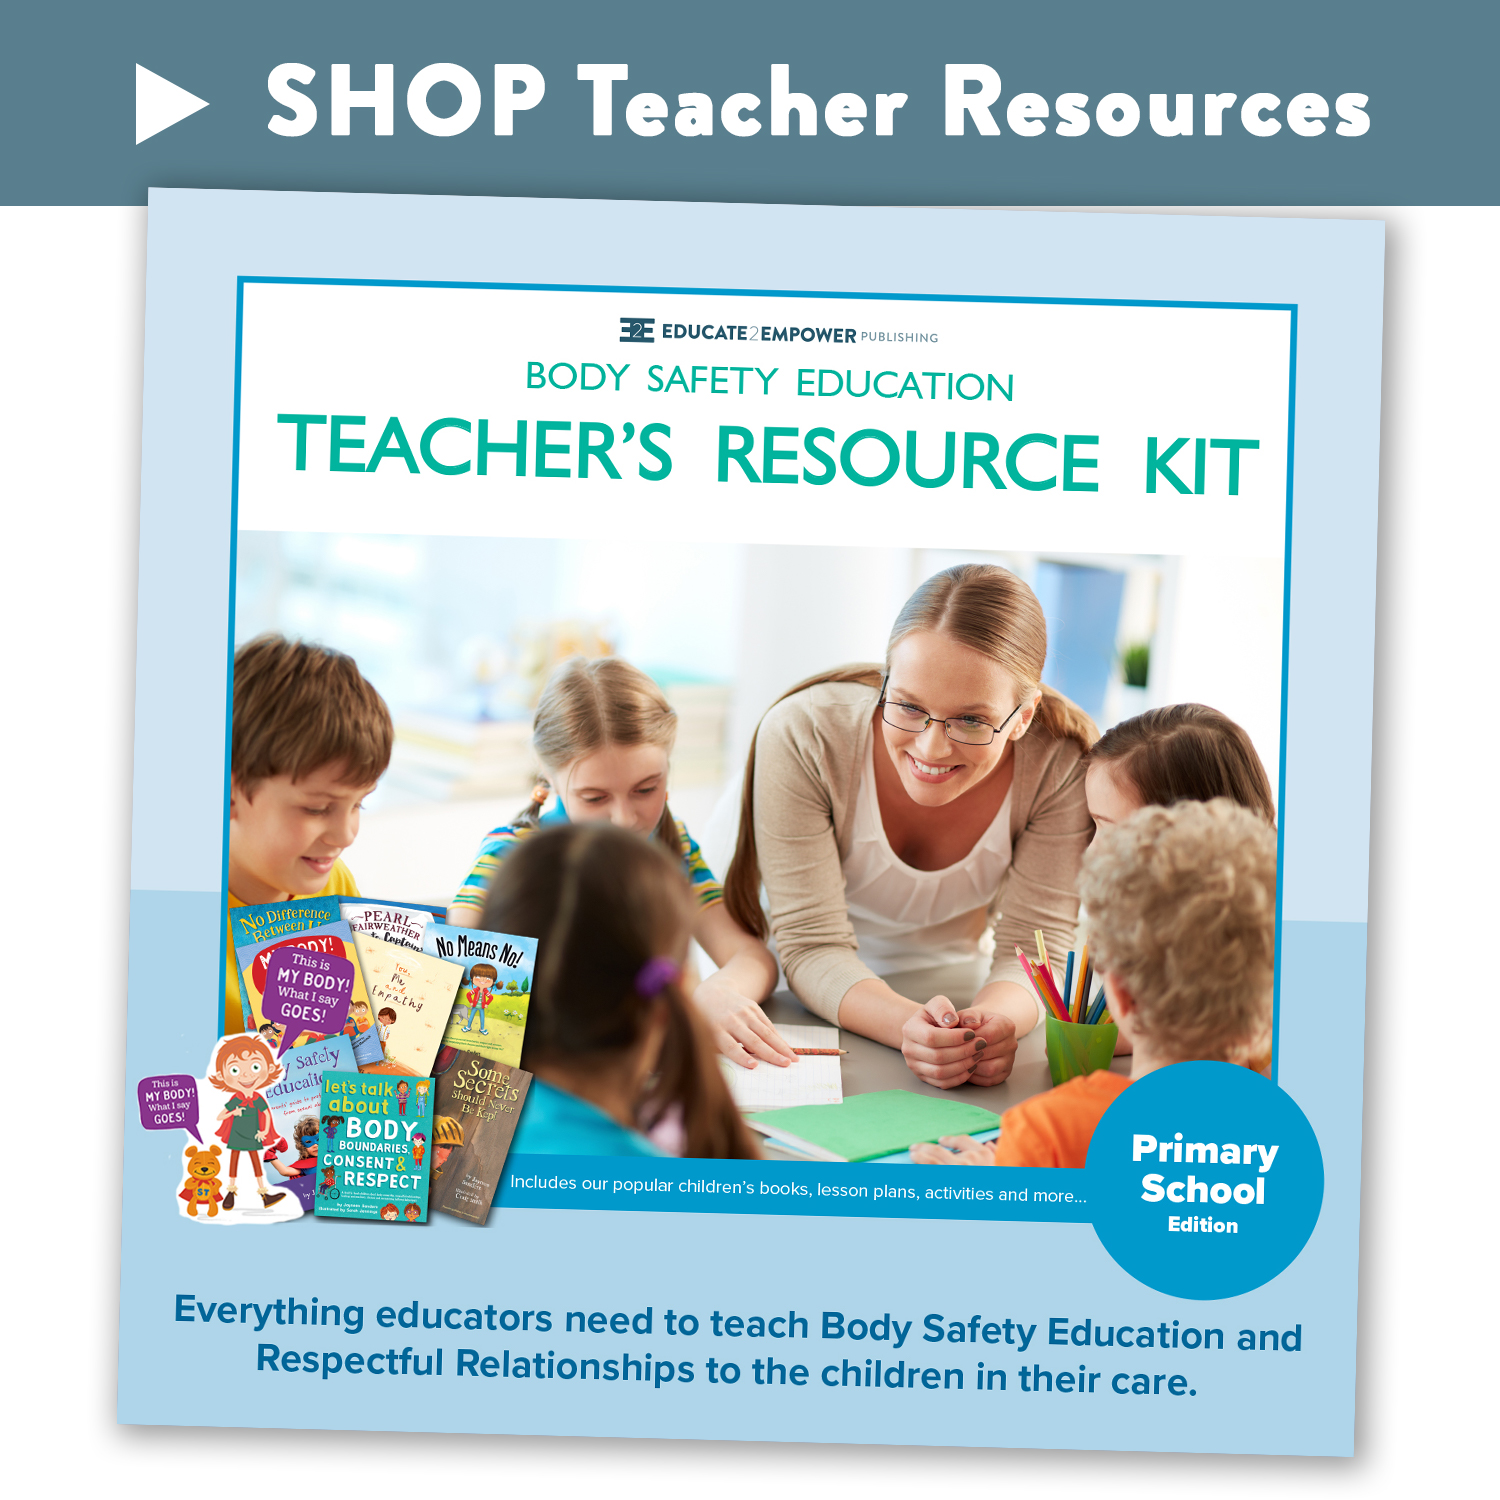 E2E_shop_TeacherResources_1.jpg